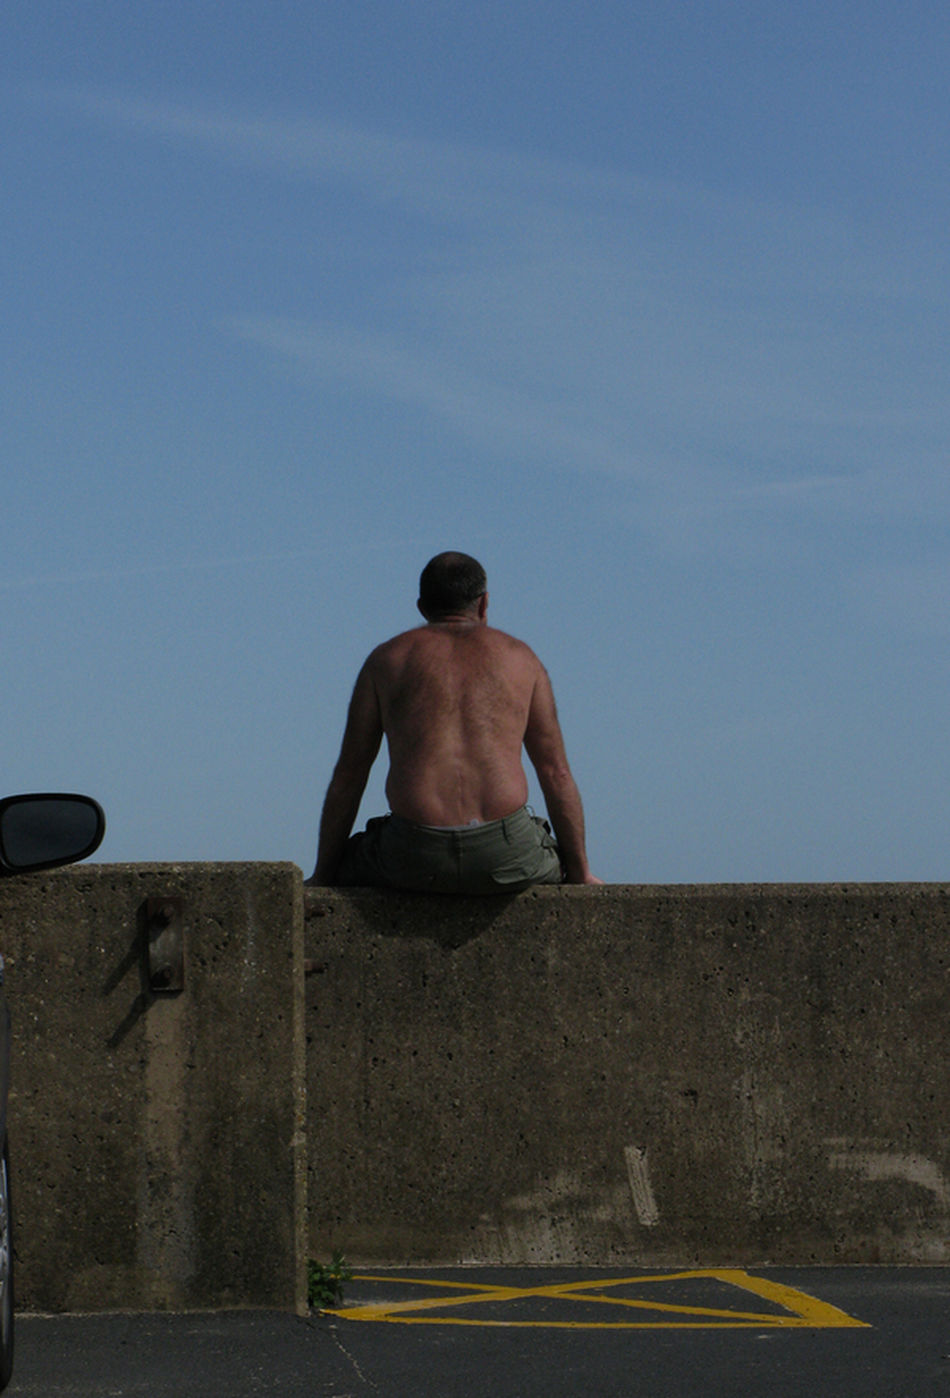 The British on Holiday, just sat on the wall Balance Carefree Day Escapism Front View Full Length Getting Away From It All Leisure Activity Lifestyles Man Sat On Wall Against Blue Sky Men Person Real People Shirtless Standing Summer The British At The Seaside On Holiday Kids Children Two 2 Girls On Jetty Watch Dingy Deep In Thought Seaside Jetty Water Wake Dingy Orange Sand Coastline Suffolk Horizon Documentary Reportage Photography Taking Shots Colour Color Dresses From My Point Of  The British On Holiday By The Seaside Waves White Crest Foam Sea Ocean Beach Sand Bathing Trunks Crocks Thinking Deep Thoughts Contemplation Man Male White Pale Lonly Looking Figure Sad Sadness Documentary Reportage Photography Photograph Photographer Col Three Quarter Length Young Adult Young Men